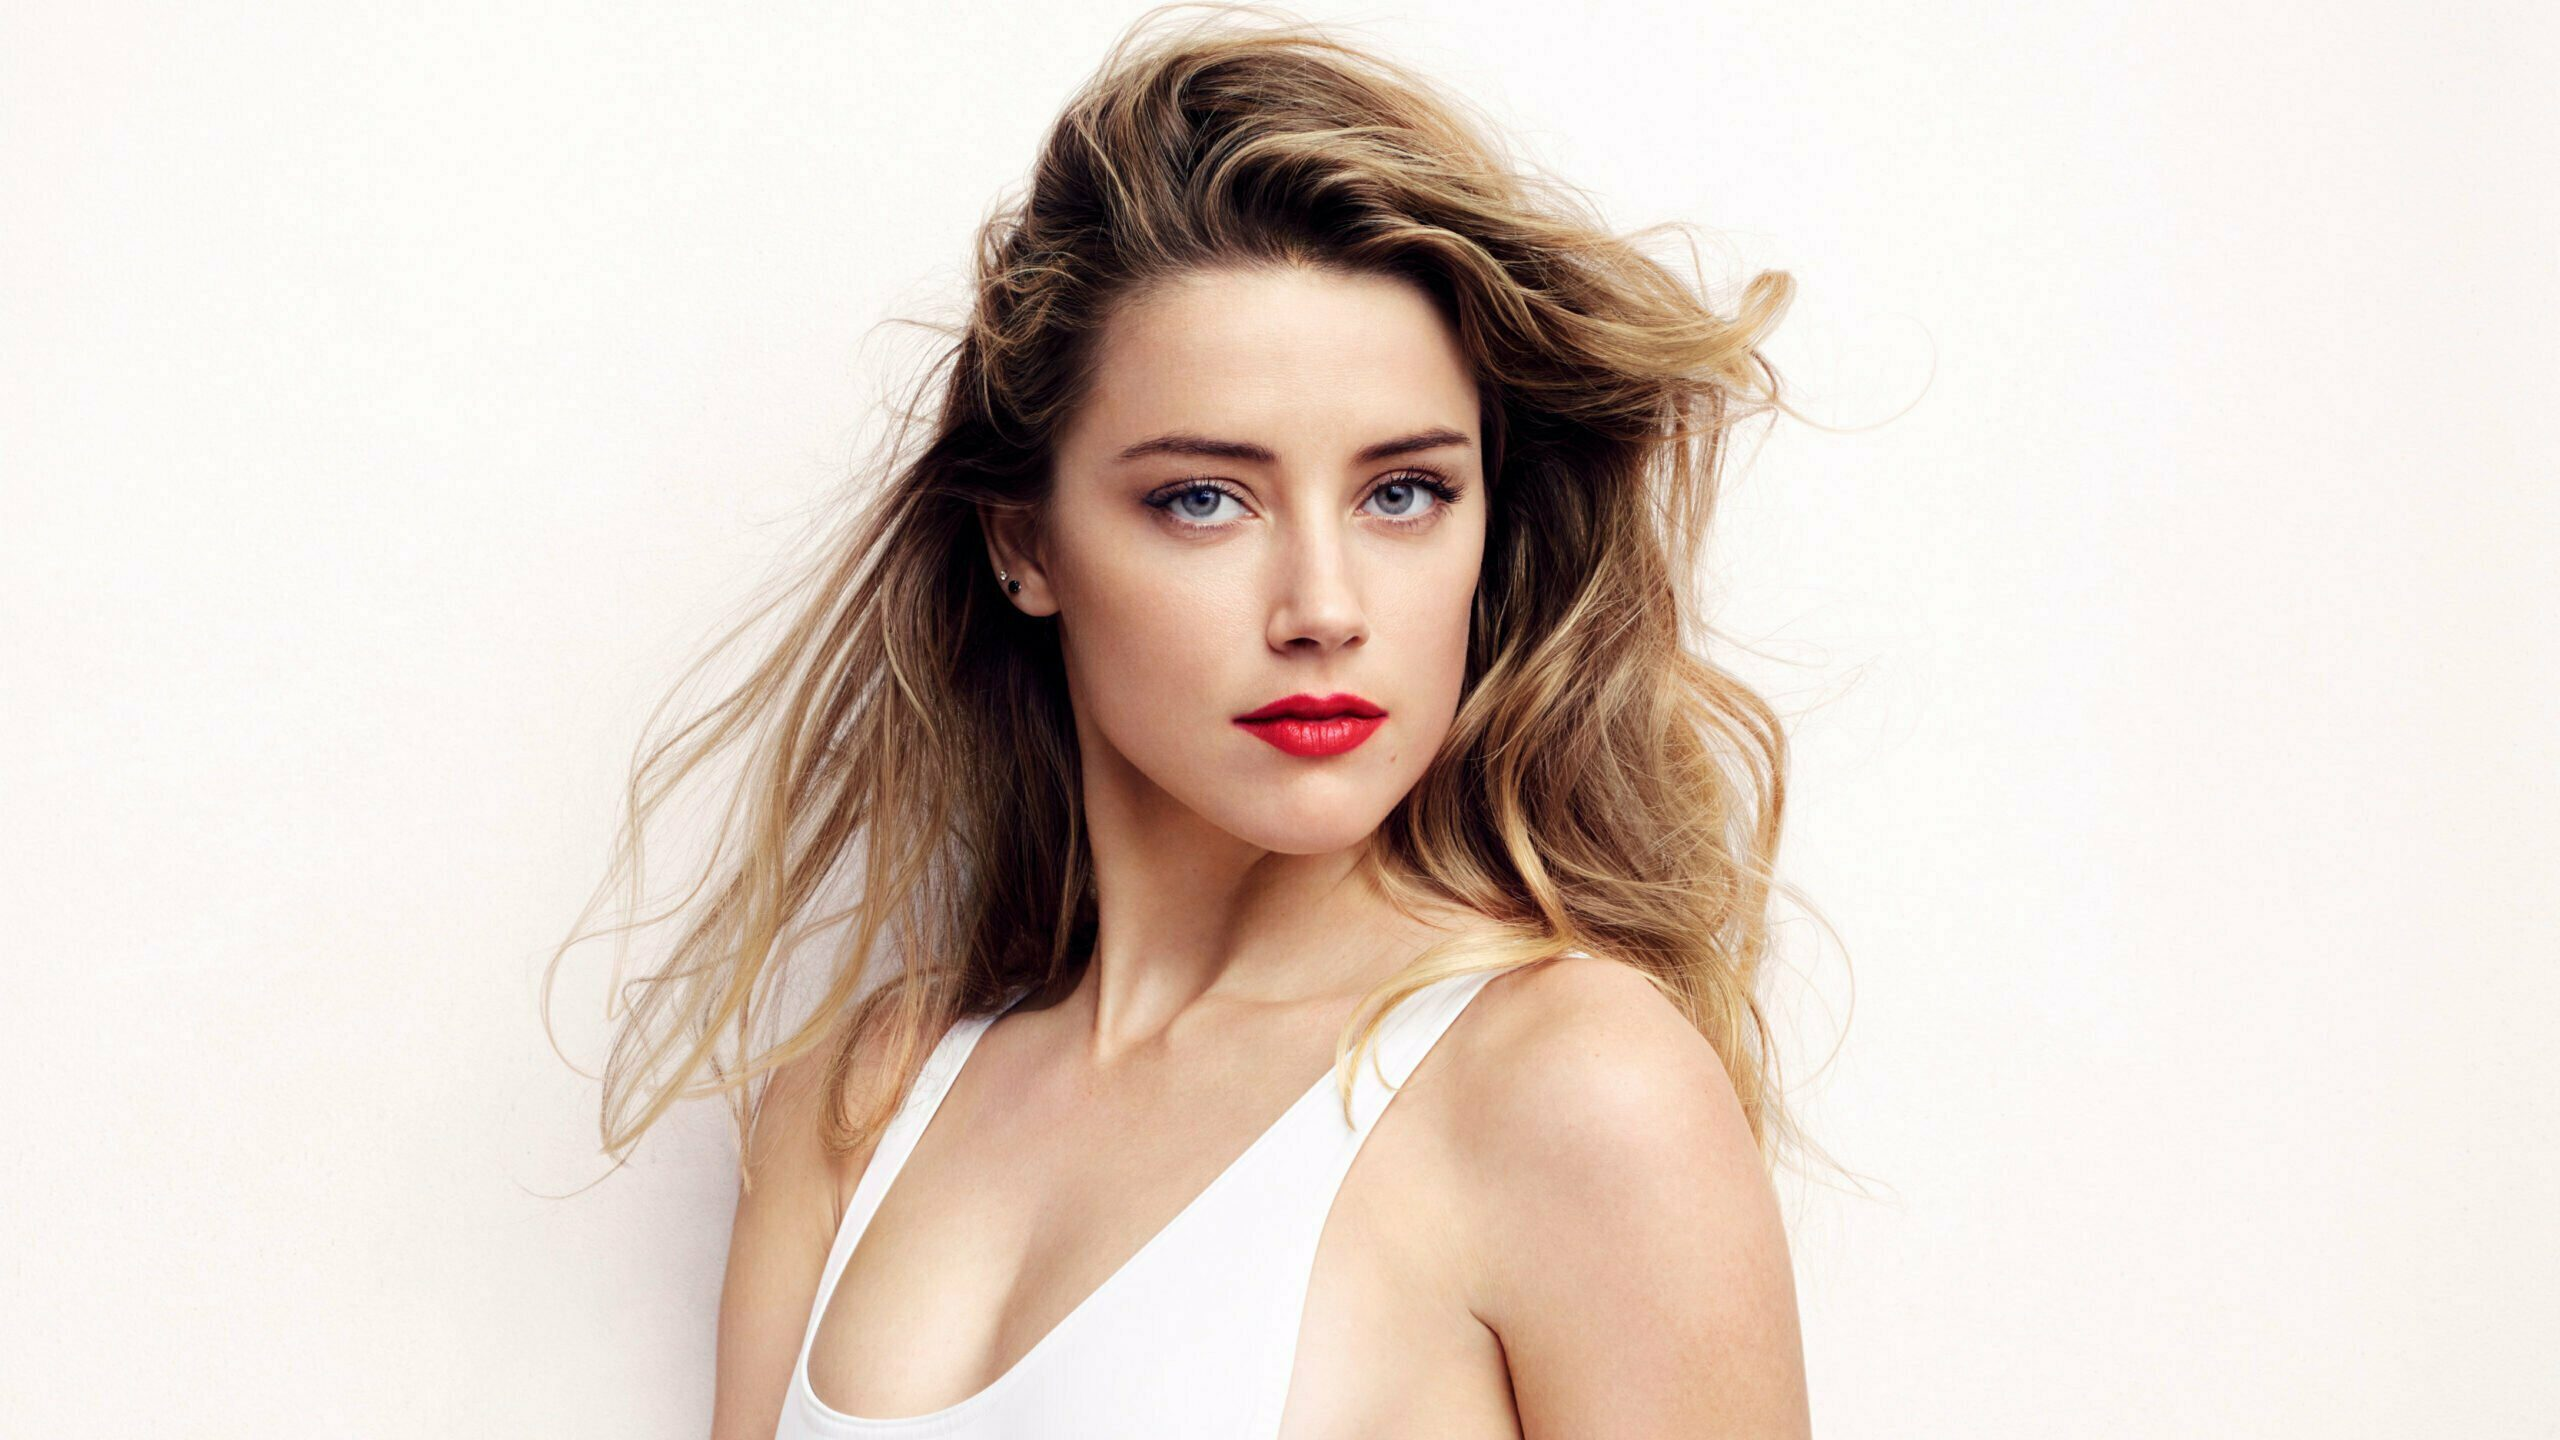 23 sexiest and hottest women in Hollywood 7 scaled